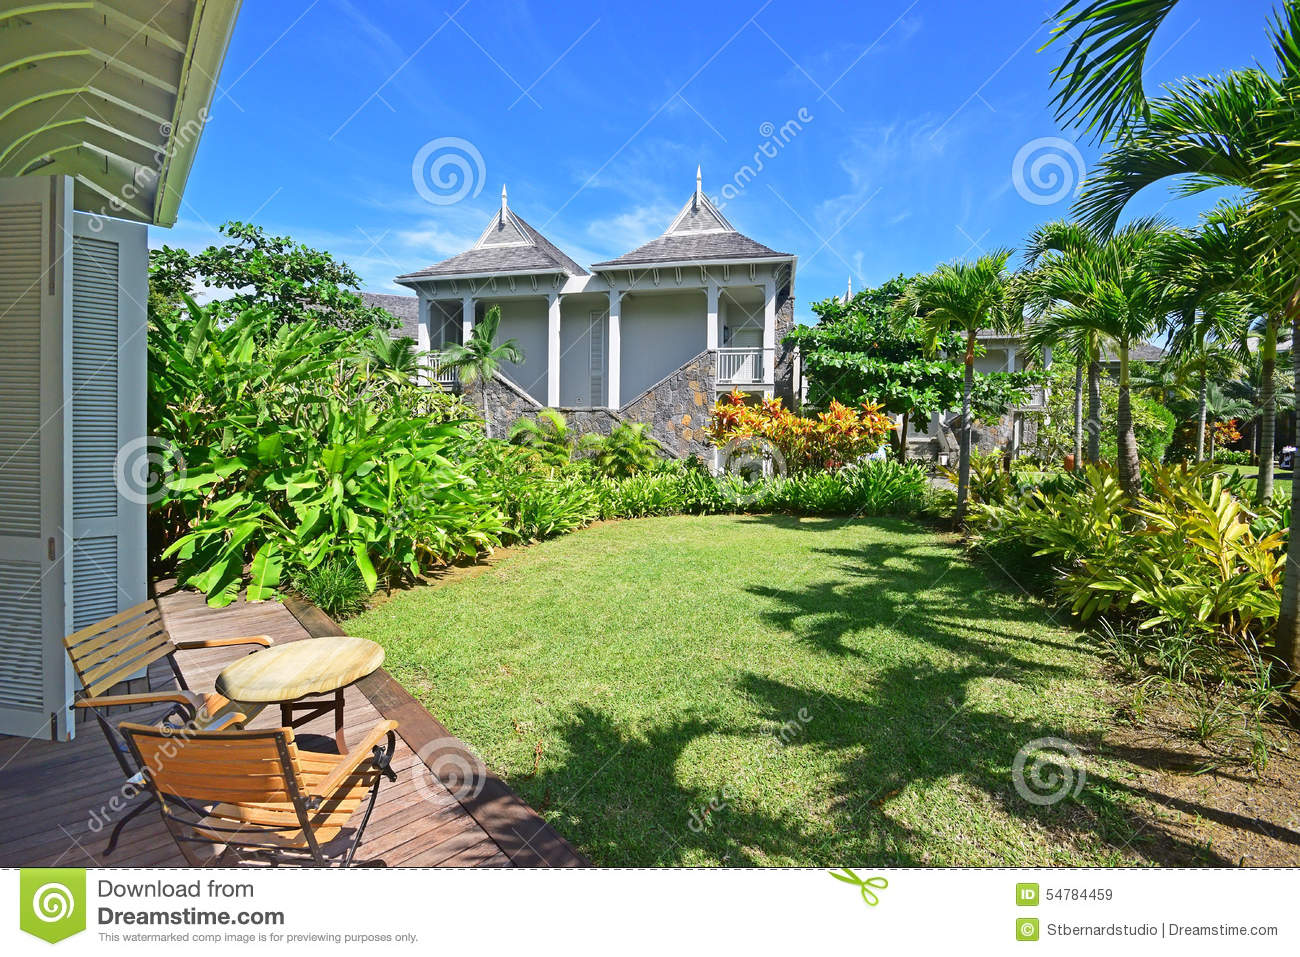 An open air porch with slightly extended roof and tall full length wooden door overlooking beautiful green garden